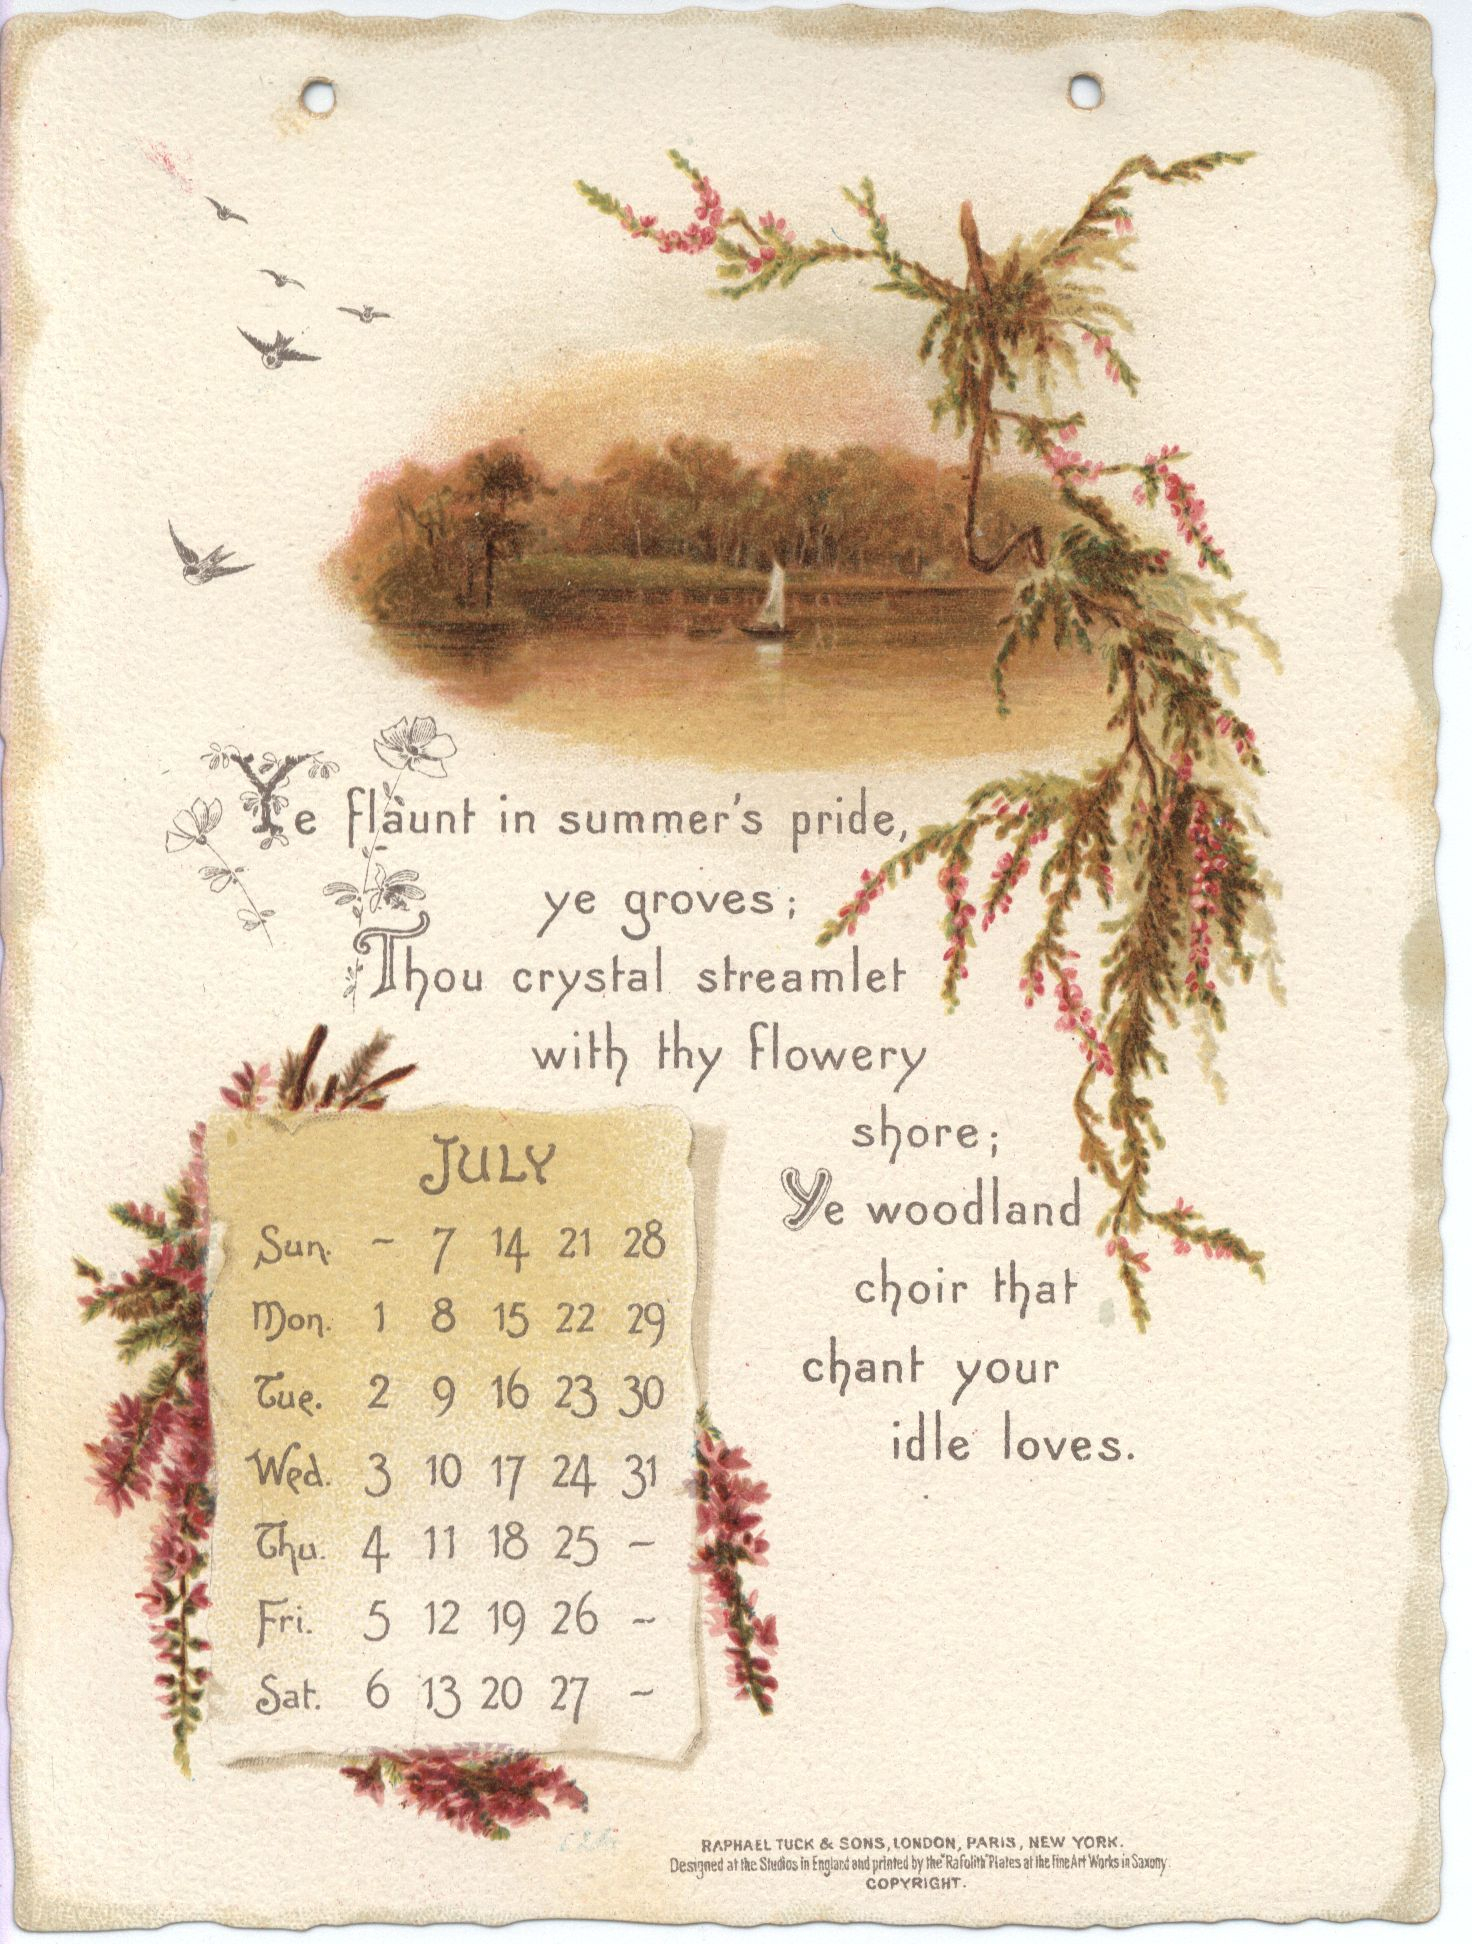 Full Sized Image: Auld Lang Syne Calendar For 1895 With Intended For Jacob Burns Printable Schedule